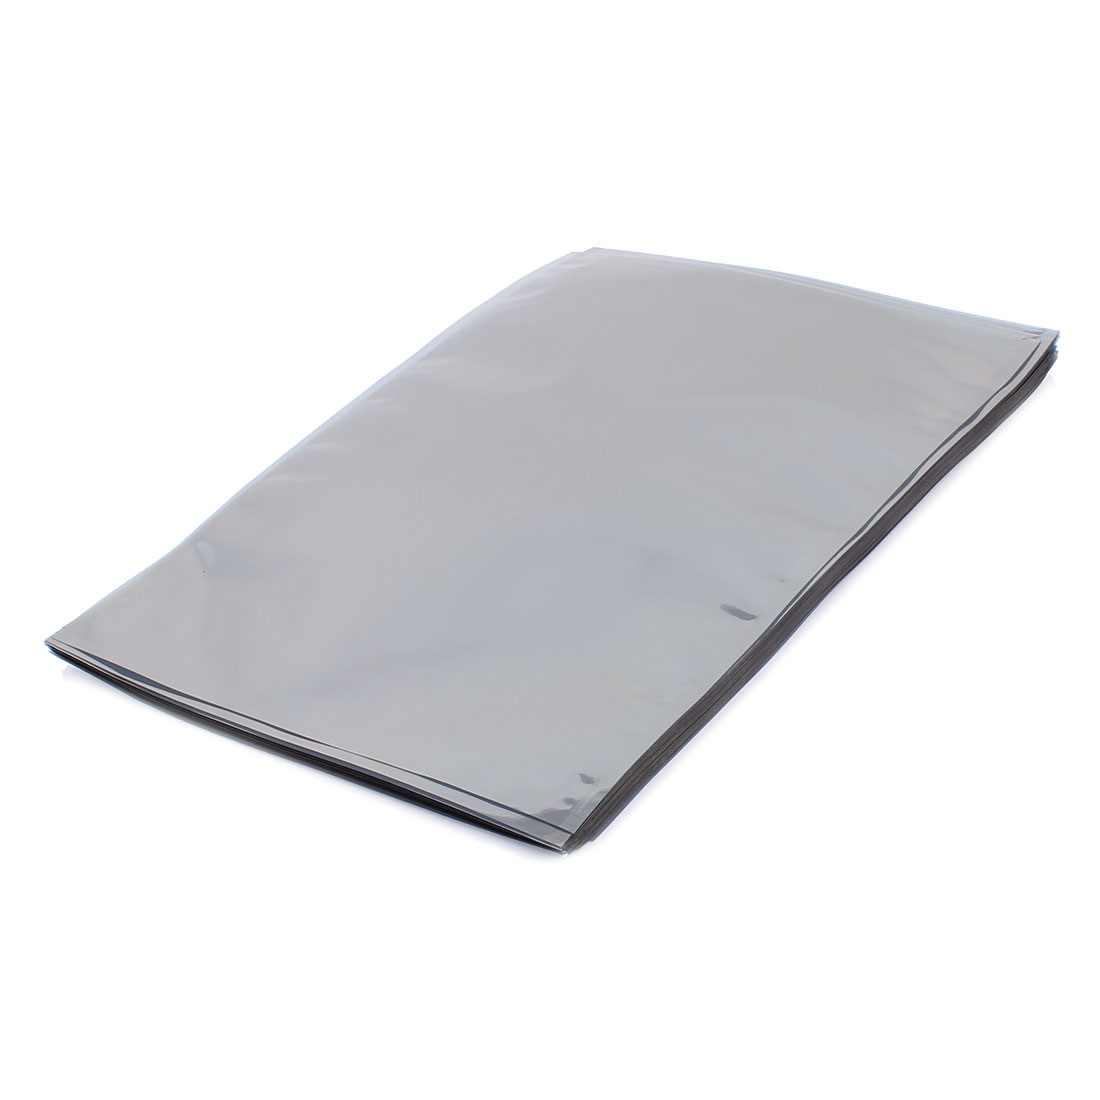 50 Pcs 190mm x 270mm Silver Tone Flat Open Top Anti Static Bag For Electronics